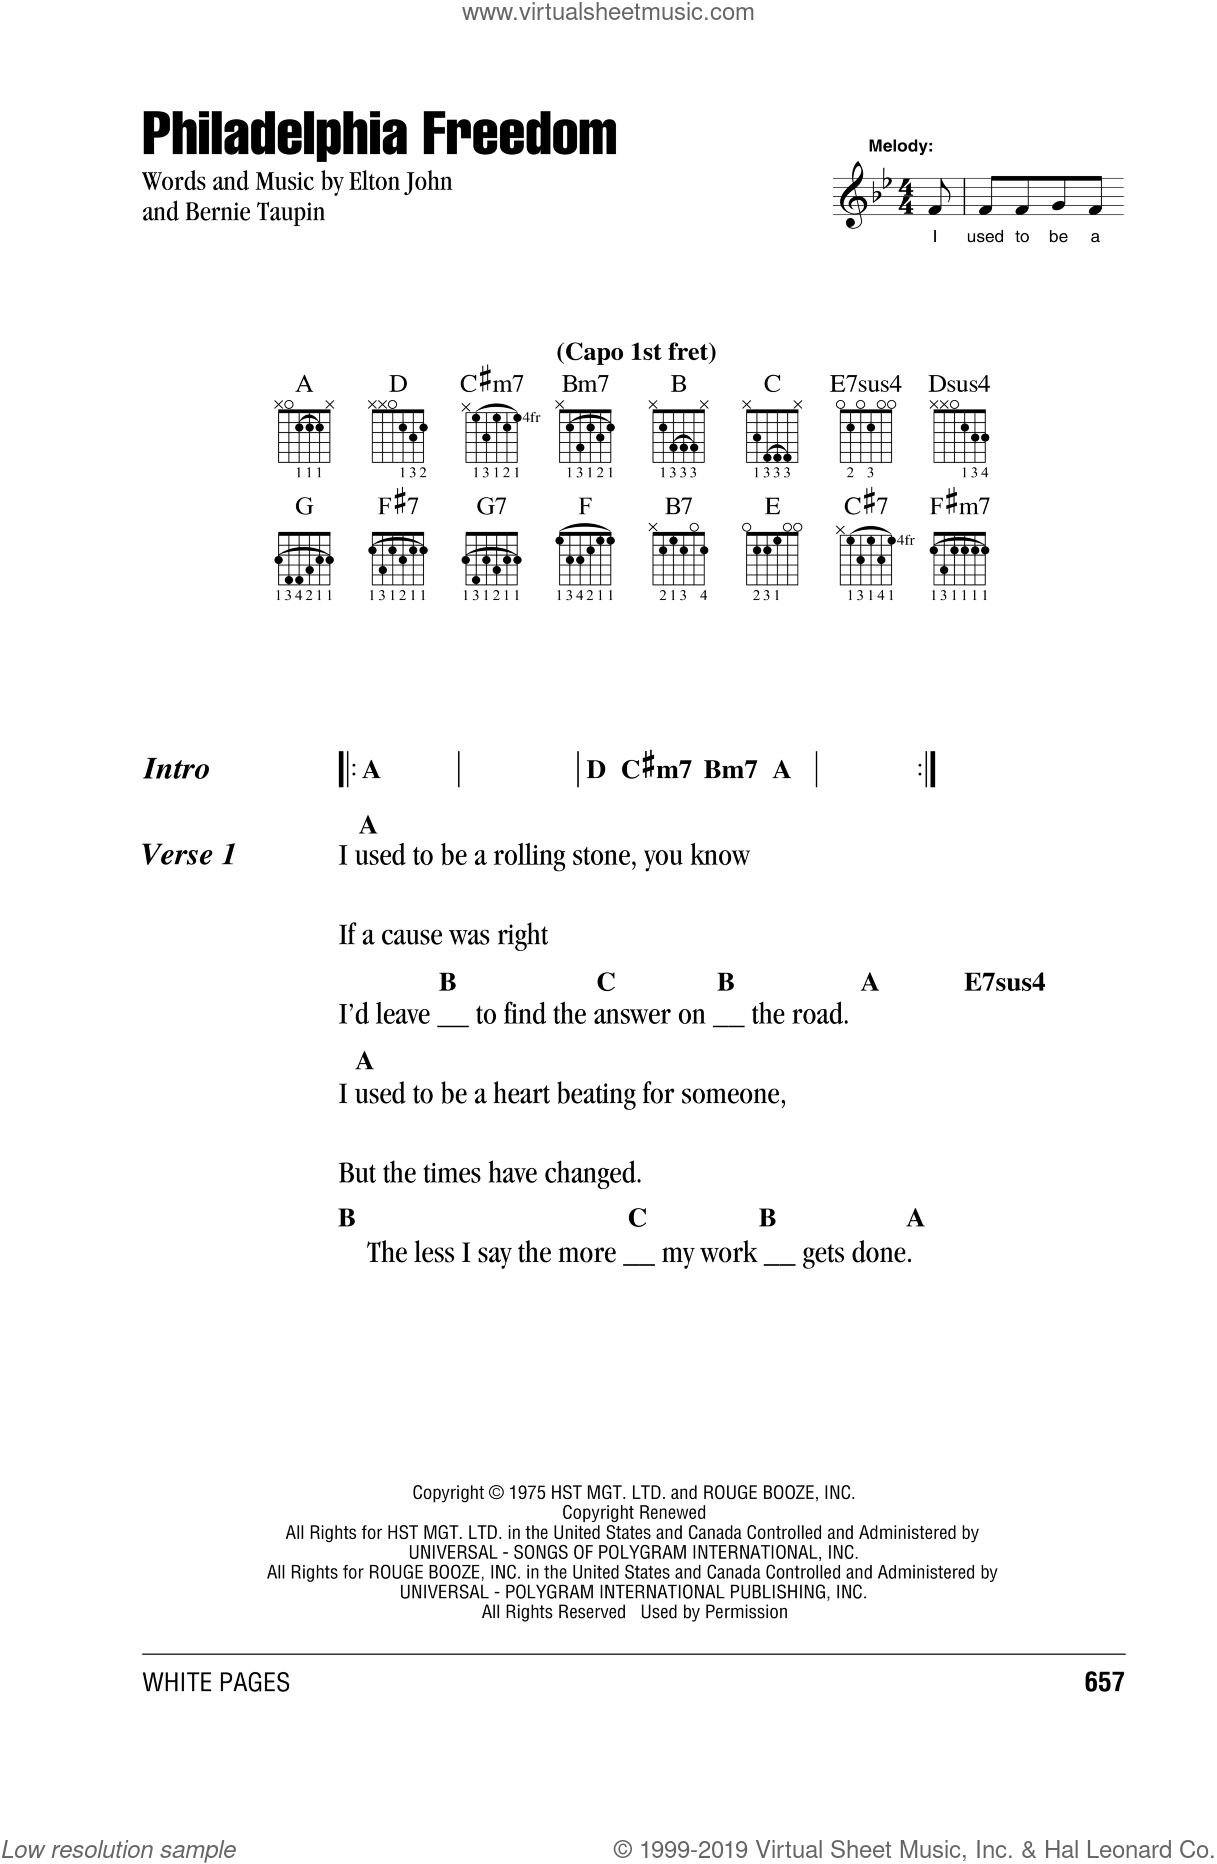 Philadelphia Freedom sheet music for guitar (chords) by Elton John and Bernie Taupin, intermediate